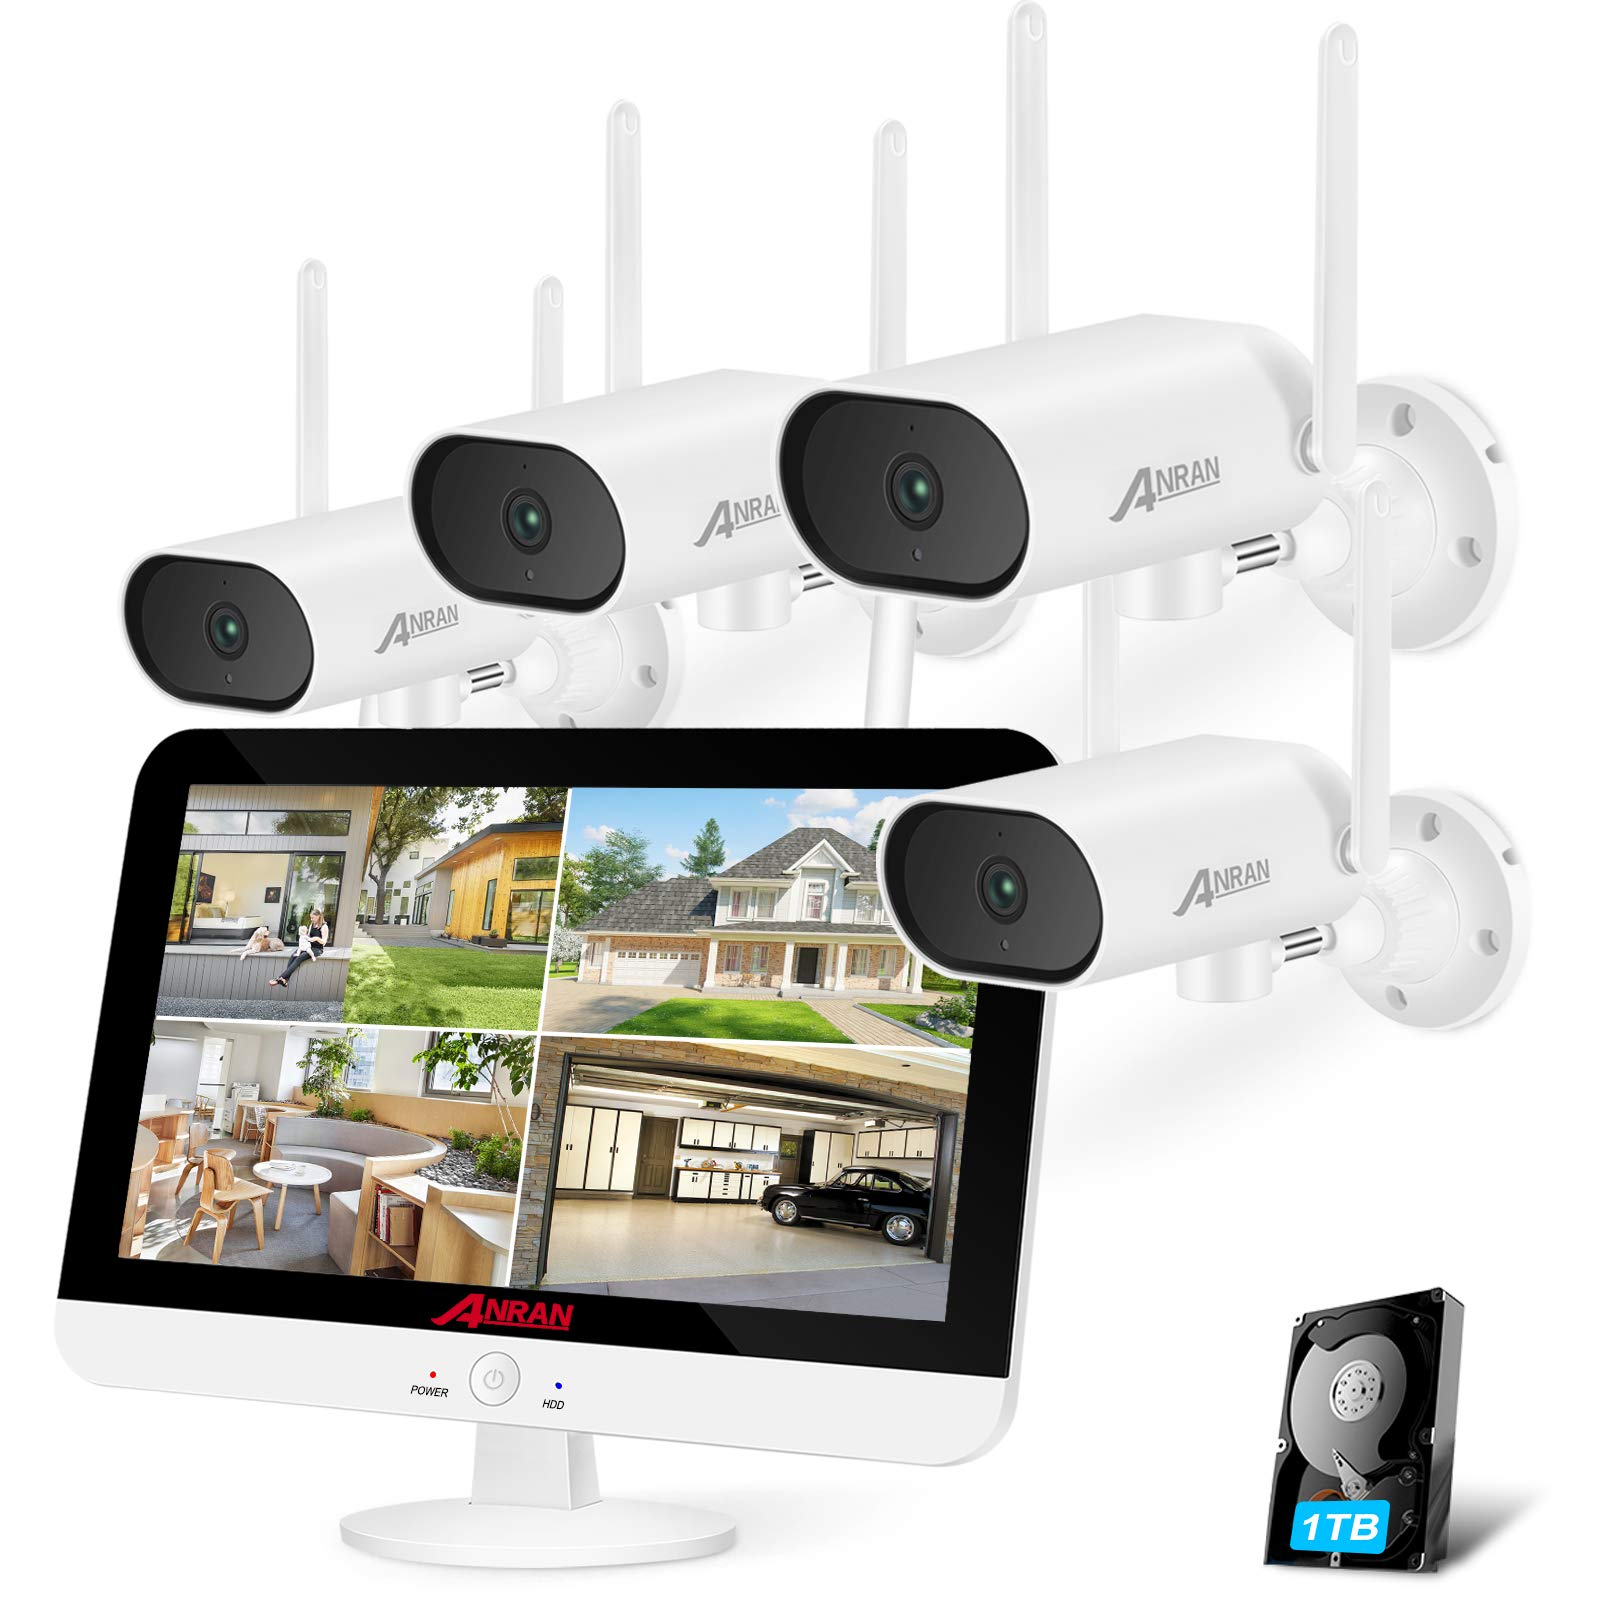 【Pan Control】Wireless CCTV Camera Systems with Monitor Audio